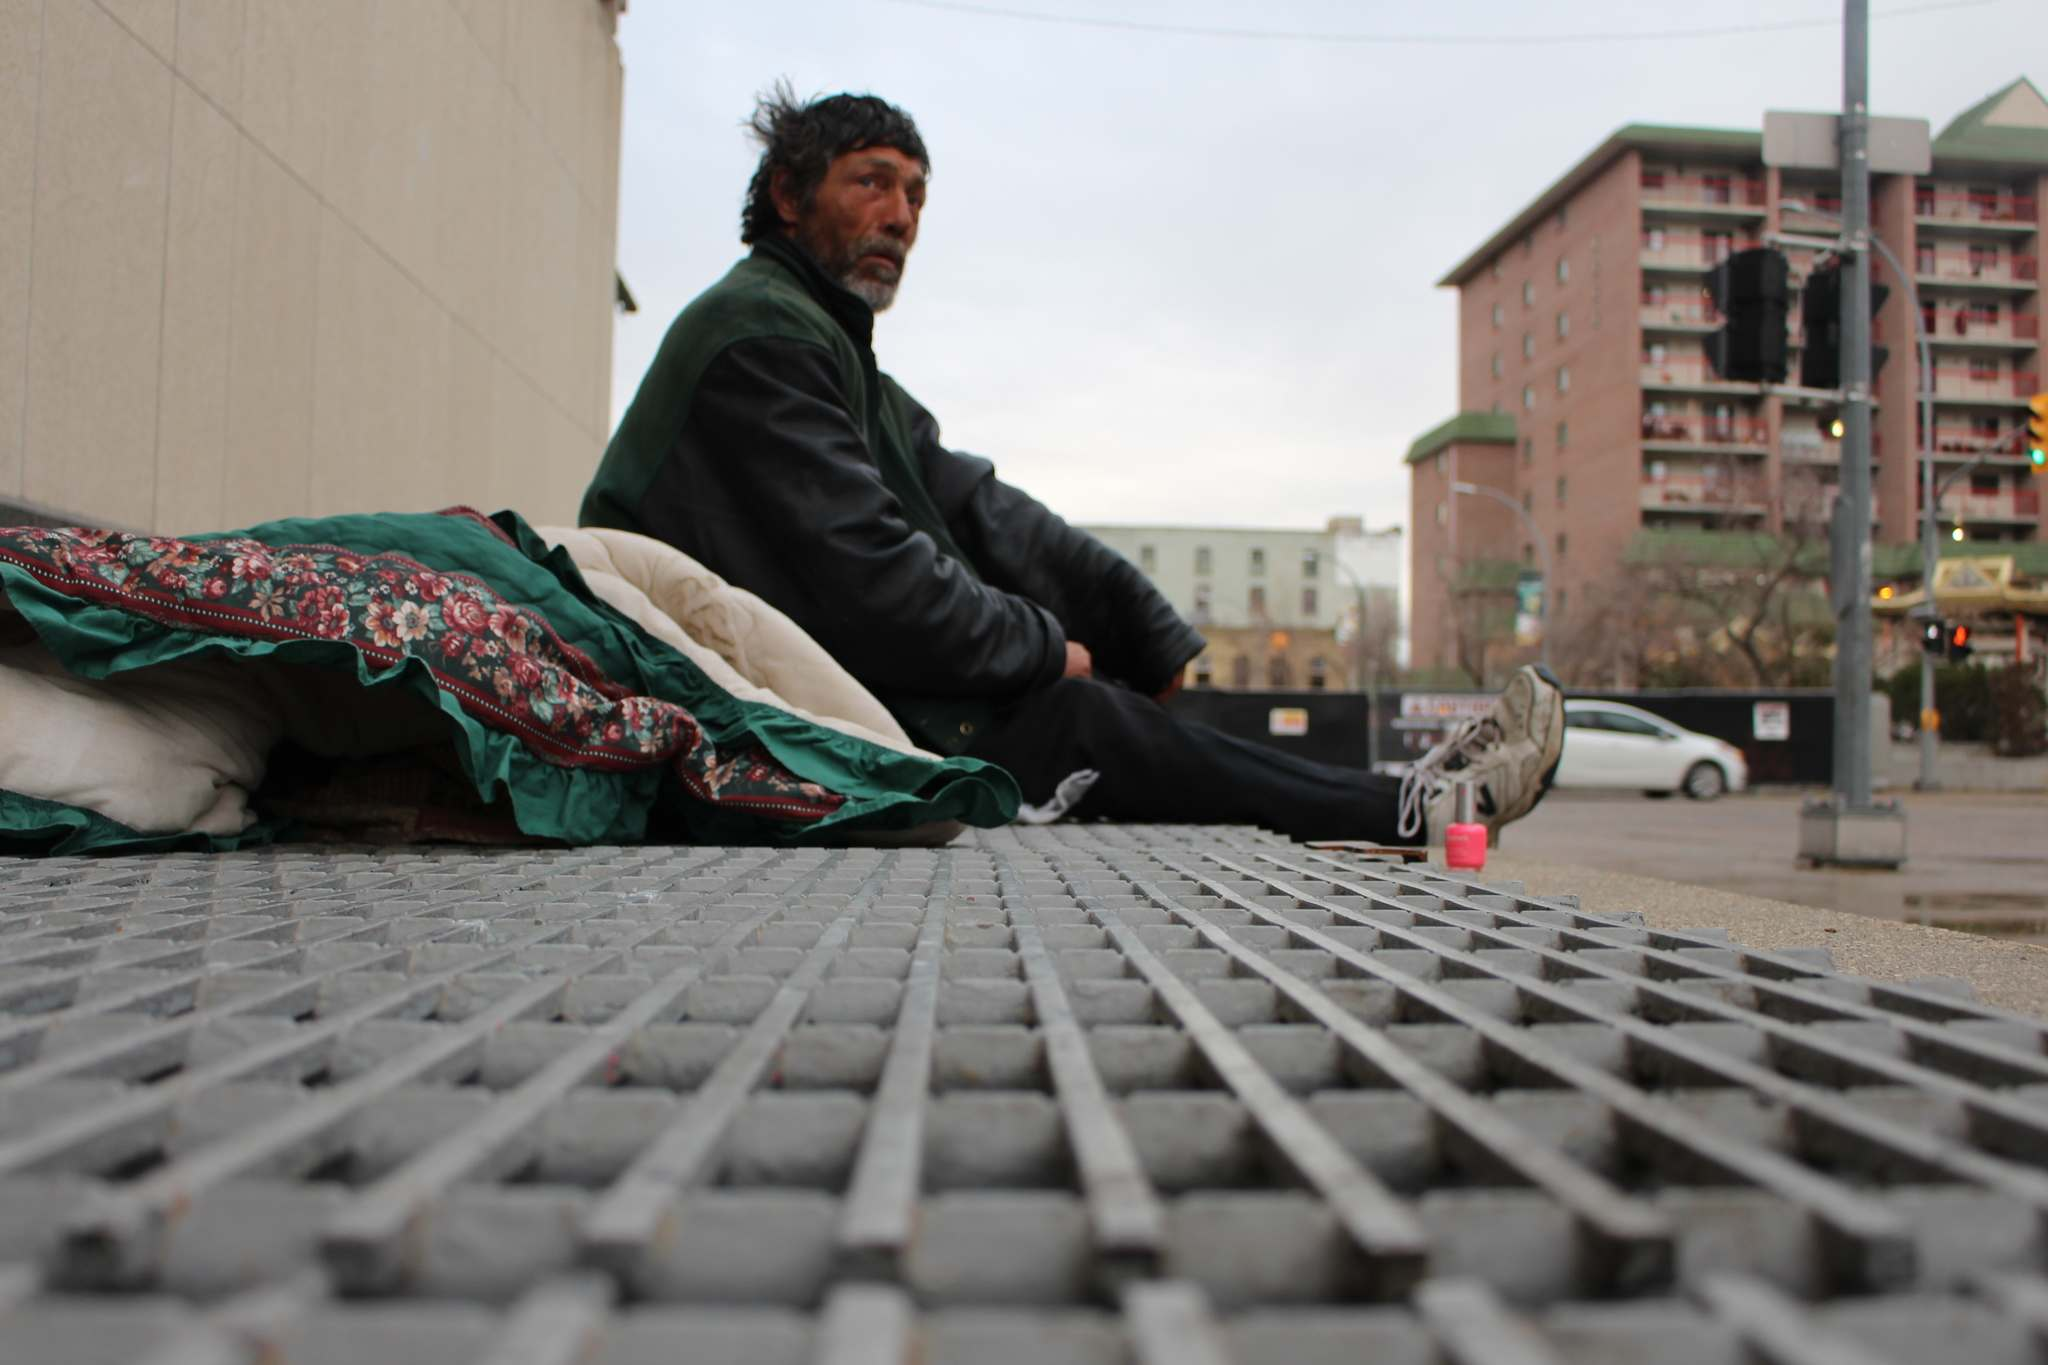 Ron, 55, is homeless and sleeps every night on these grates right outside City Hall.